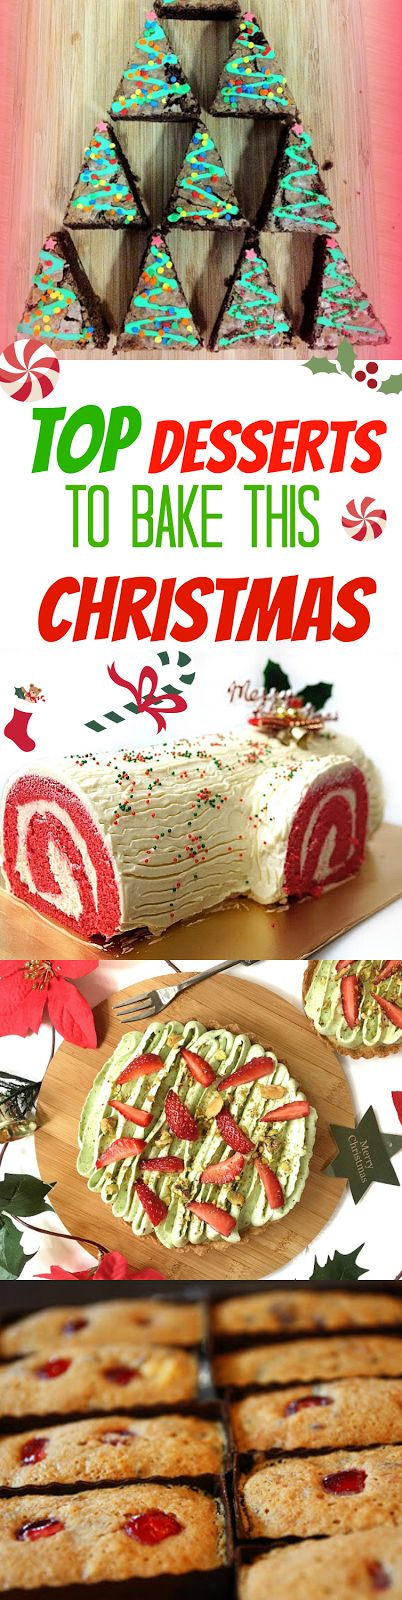 My TOP pick for Desserts and DIY this Christmas Season. Get all the yummy recipes, tutorial and steps here!! Get Ideas for Christmas edible gifts here as well.